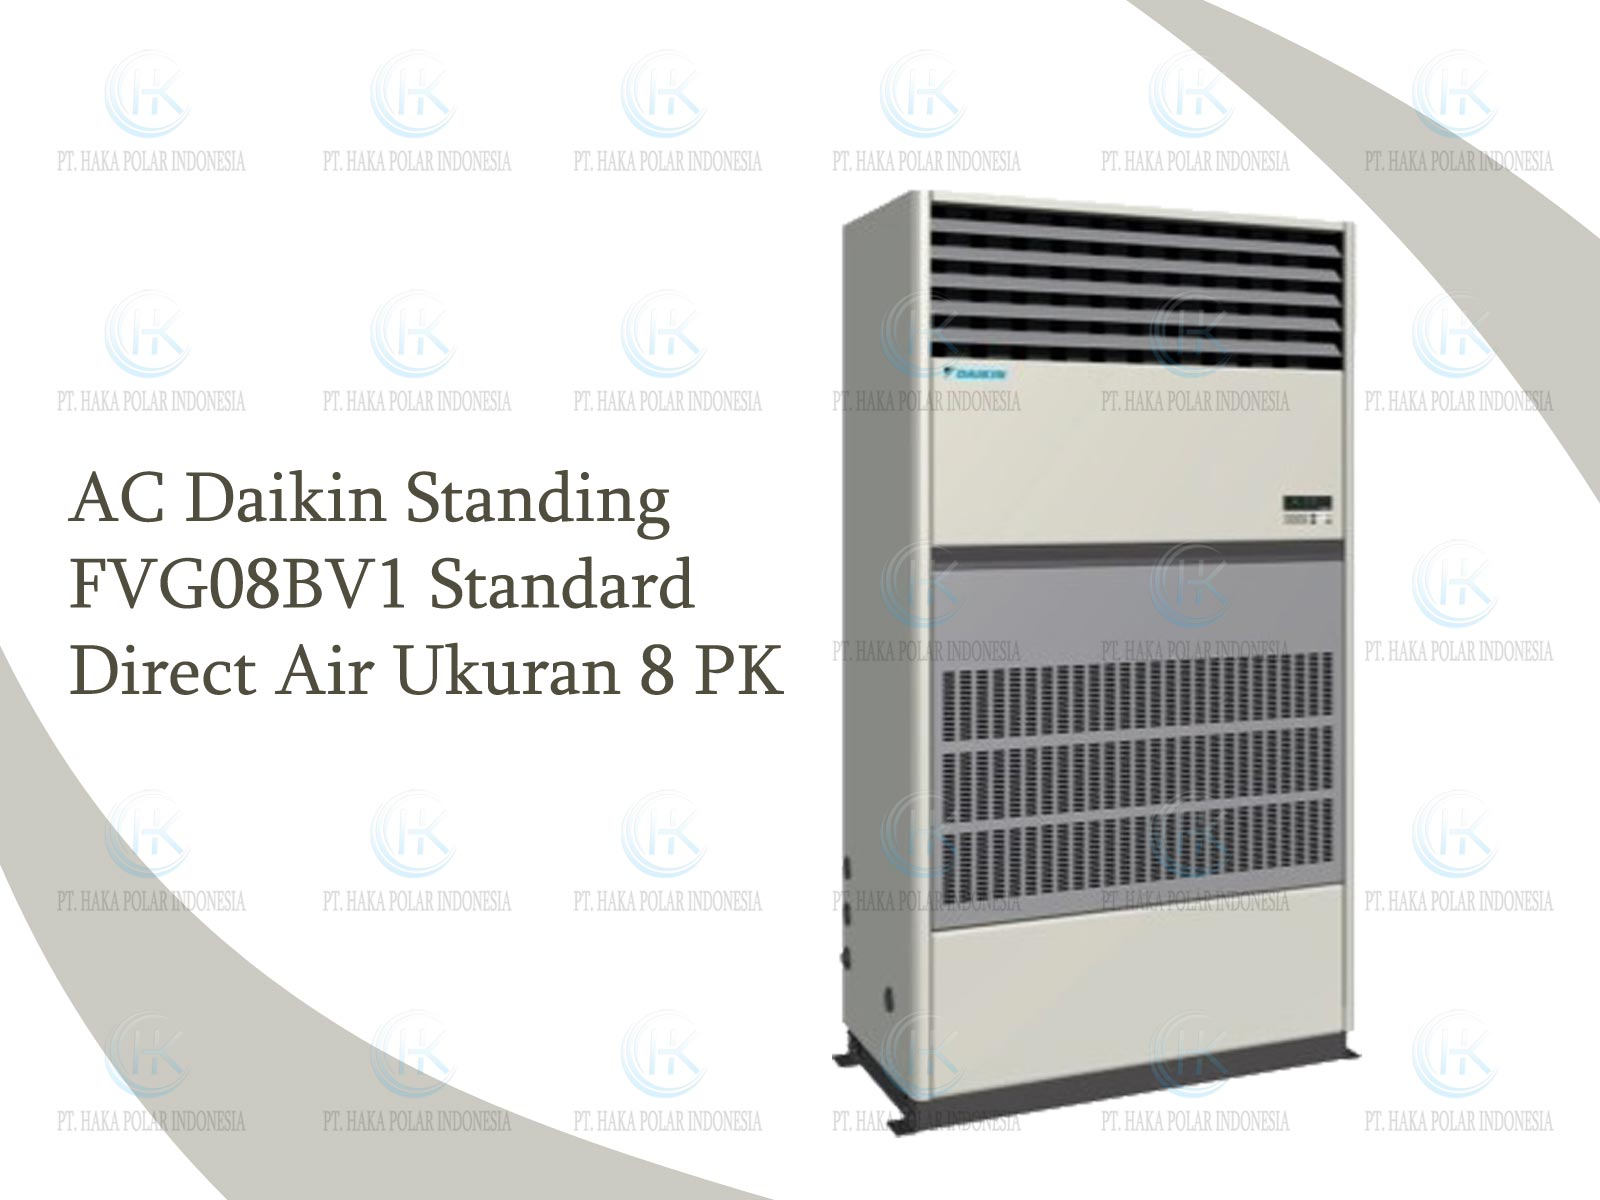 AC Daikin Package FVG08BV1 8 PK Floor Standing Standard Direct Air